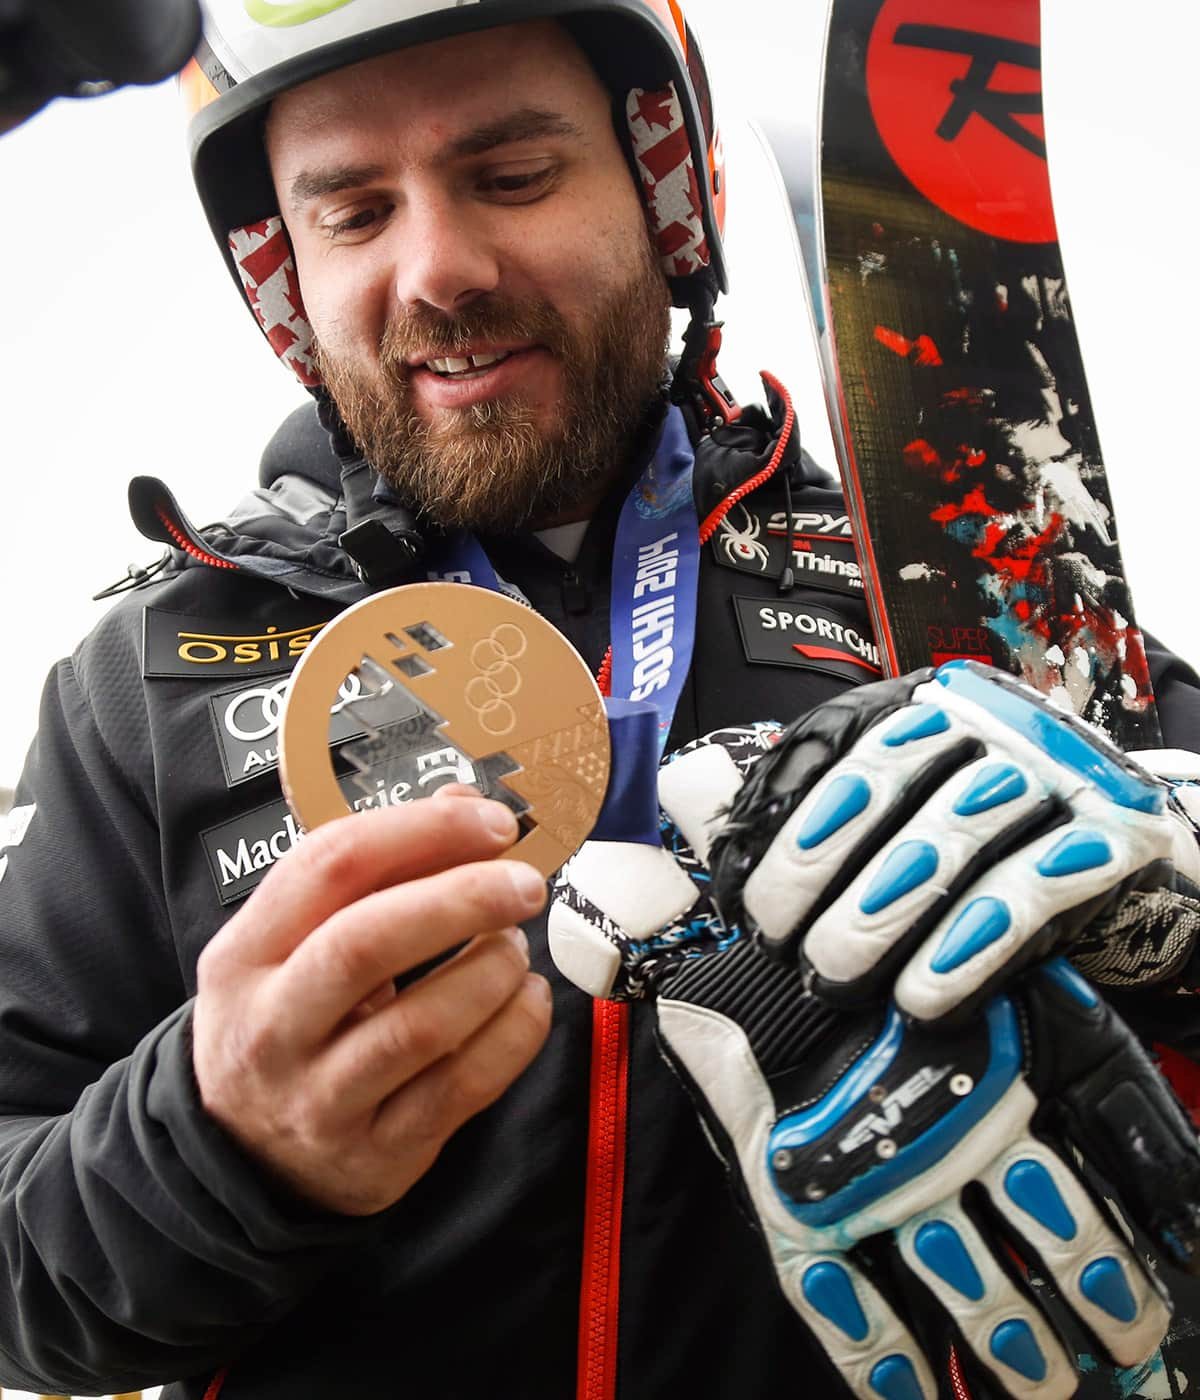 Jan Hudec: An inside look at his Olympic resolve